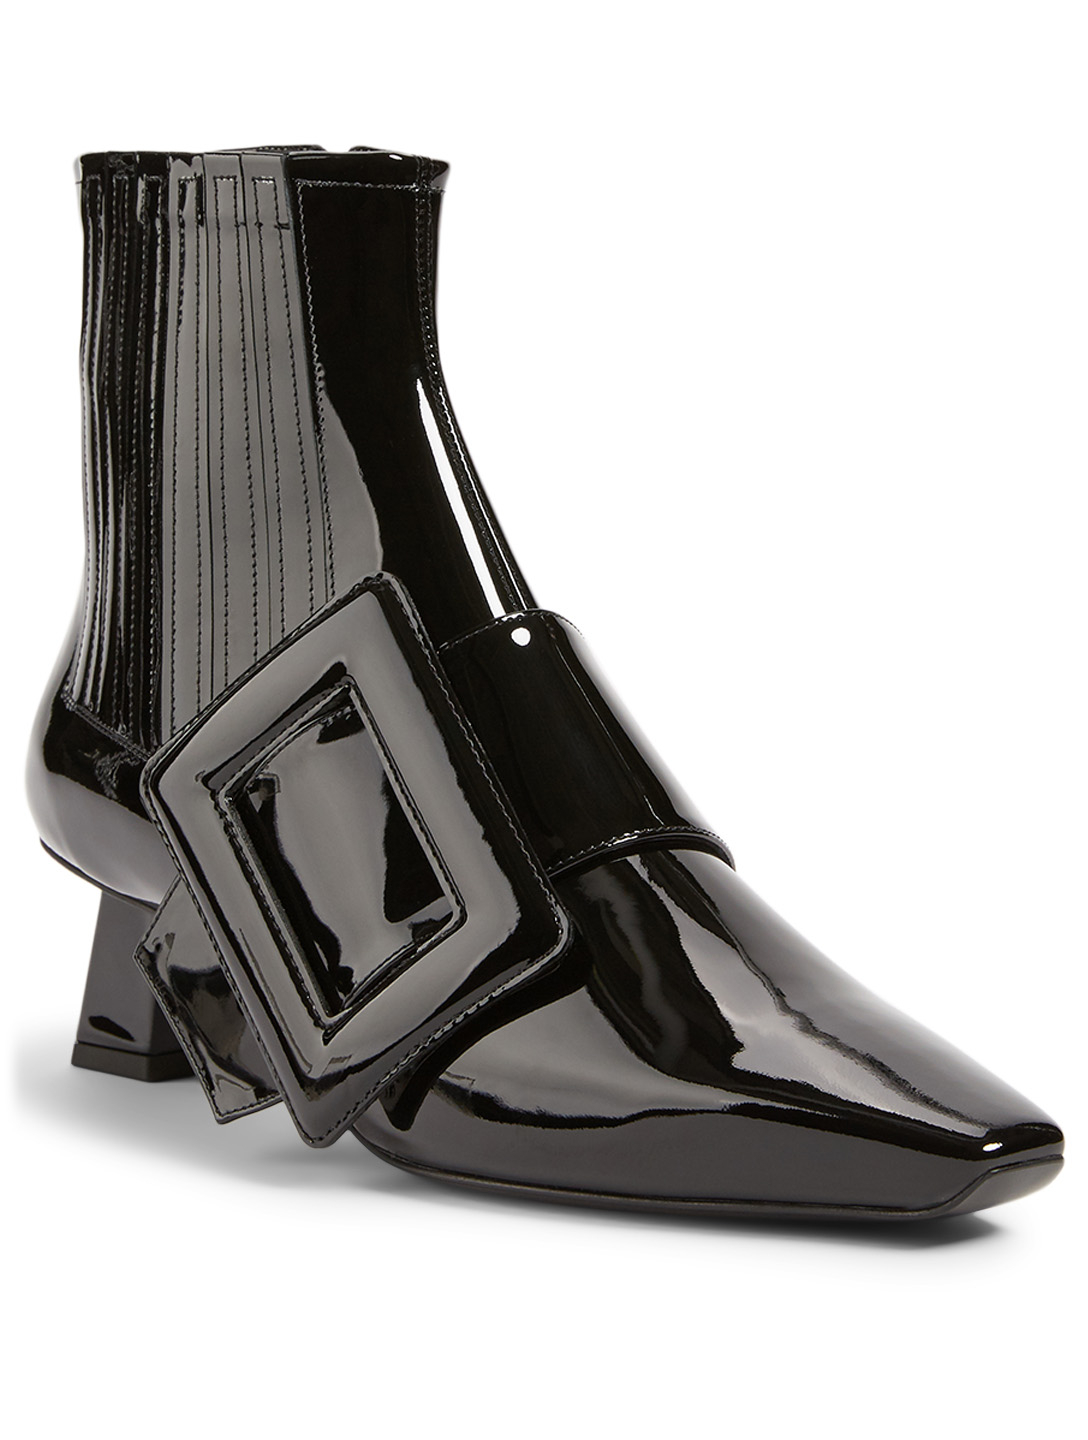 ROGER VIVIER Trapeze Extra Vivier Patent Leather Heeled Ankle Boots Women's Black